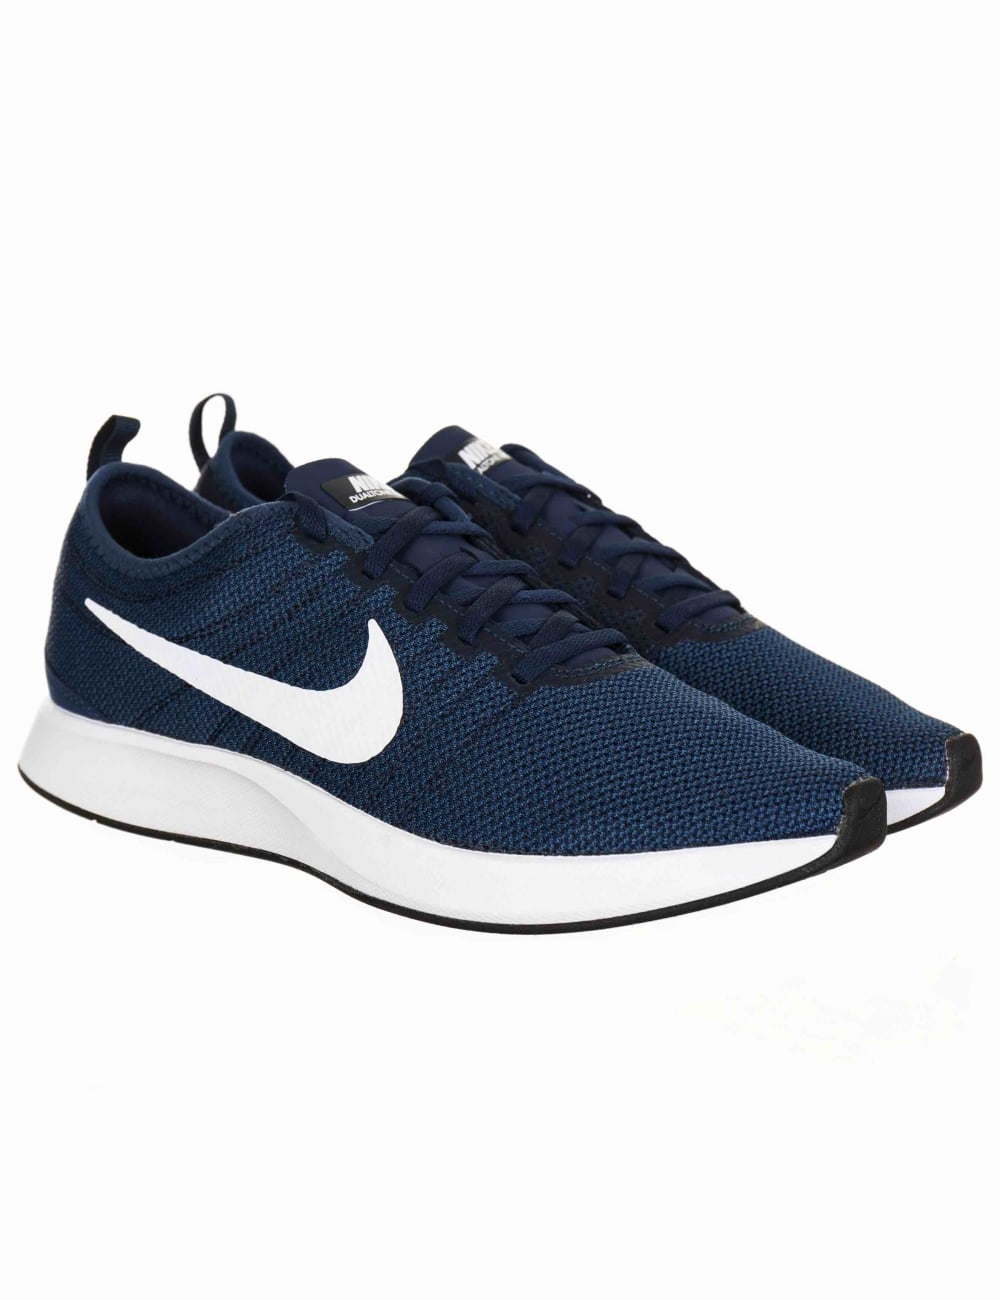 Trainers From Nike Fat Shoes Midnight Racer Navywhite Dualtone srCtQxhd